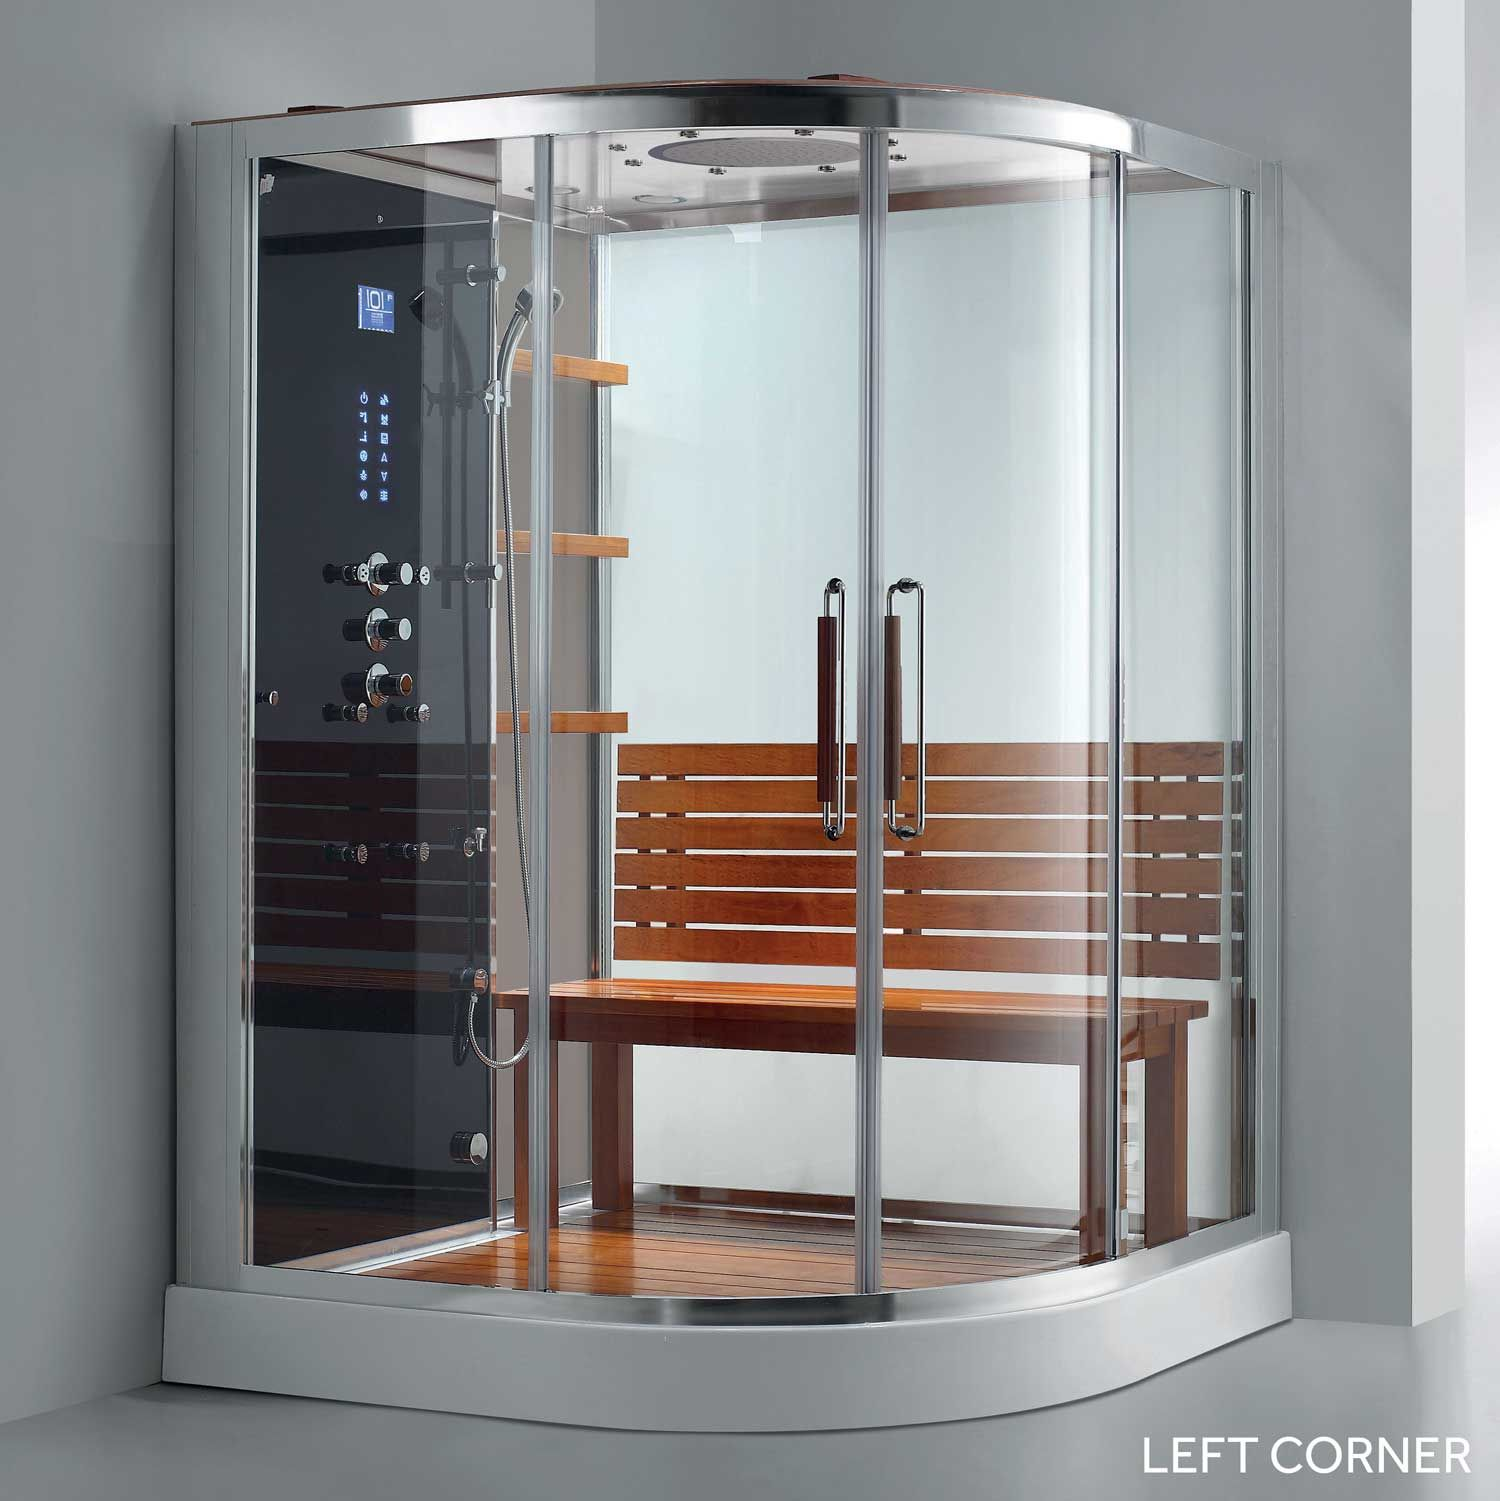 32 X 48 Rectangular Corner Shower Enclosure With Curved Front